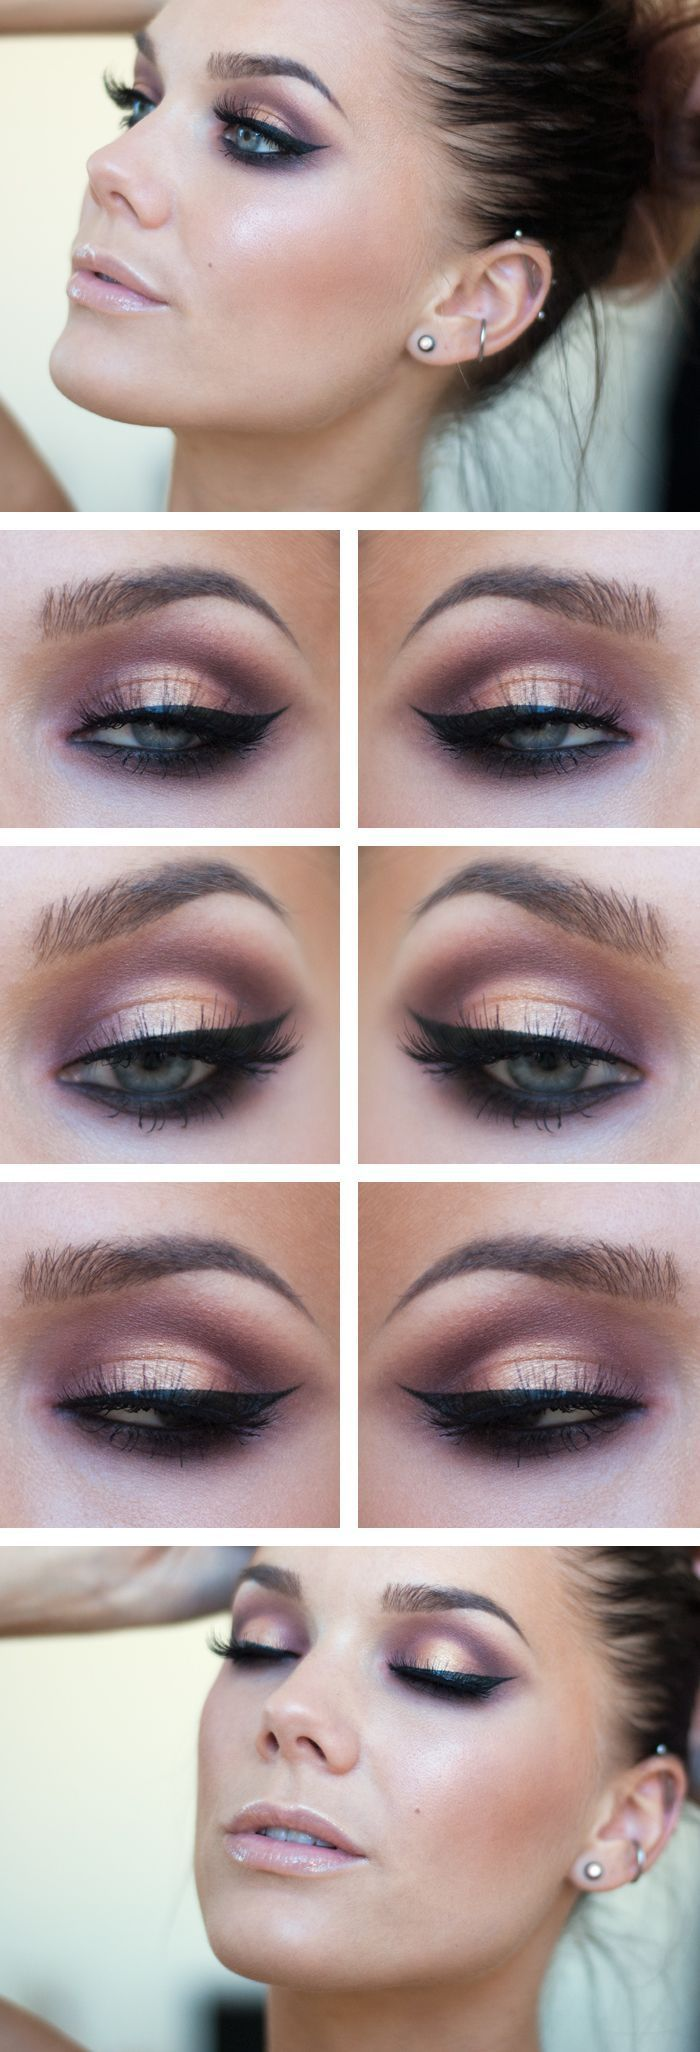 eyes eyemakeup eyedesigns makeup beauty popular